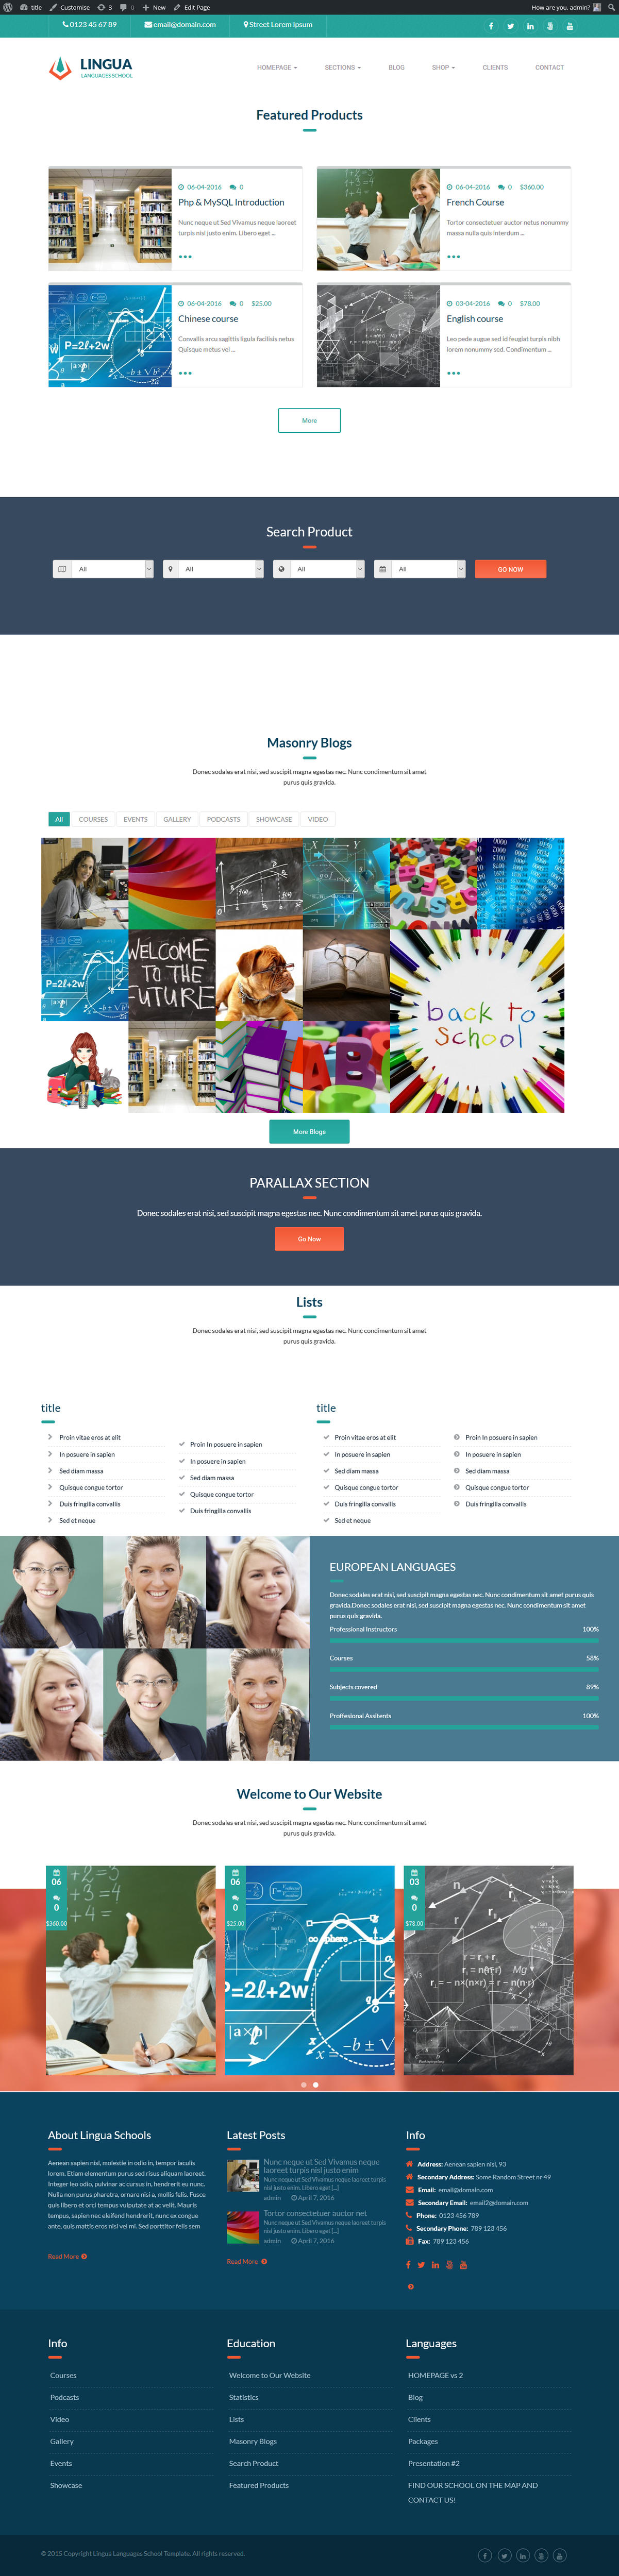 Website Customization by sodasi_web - 102109